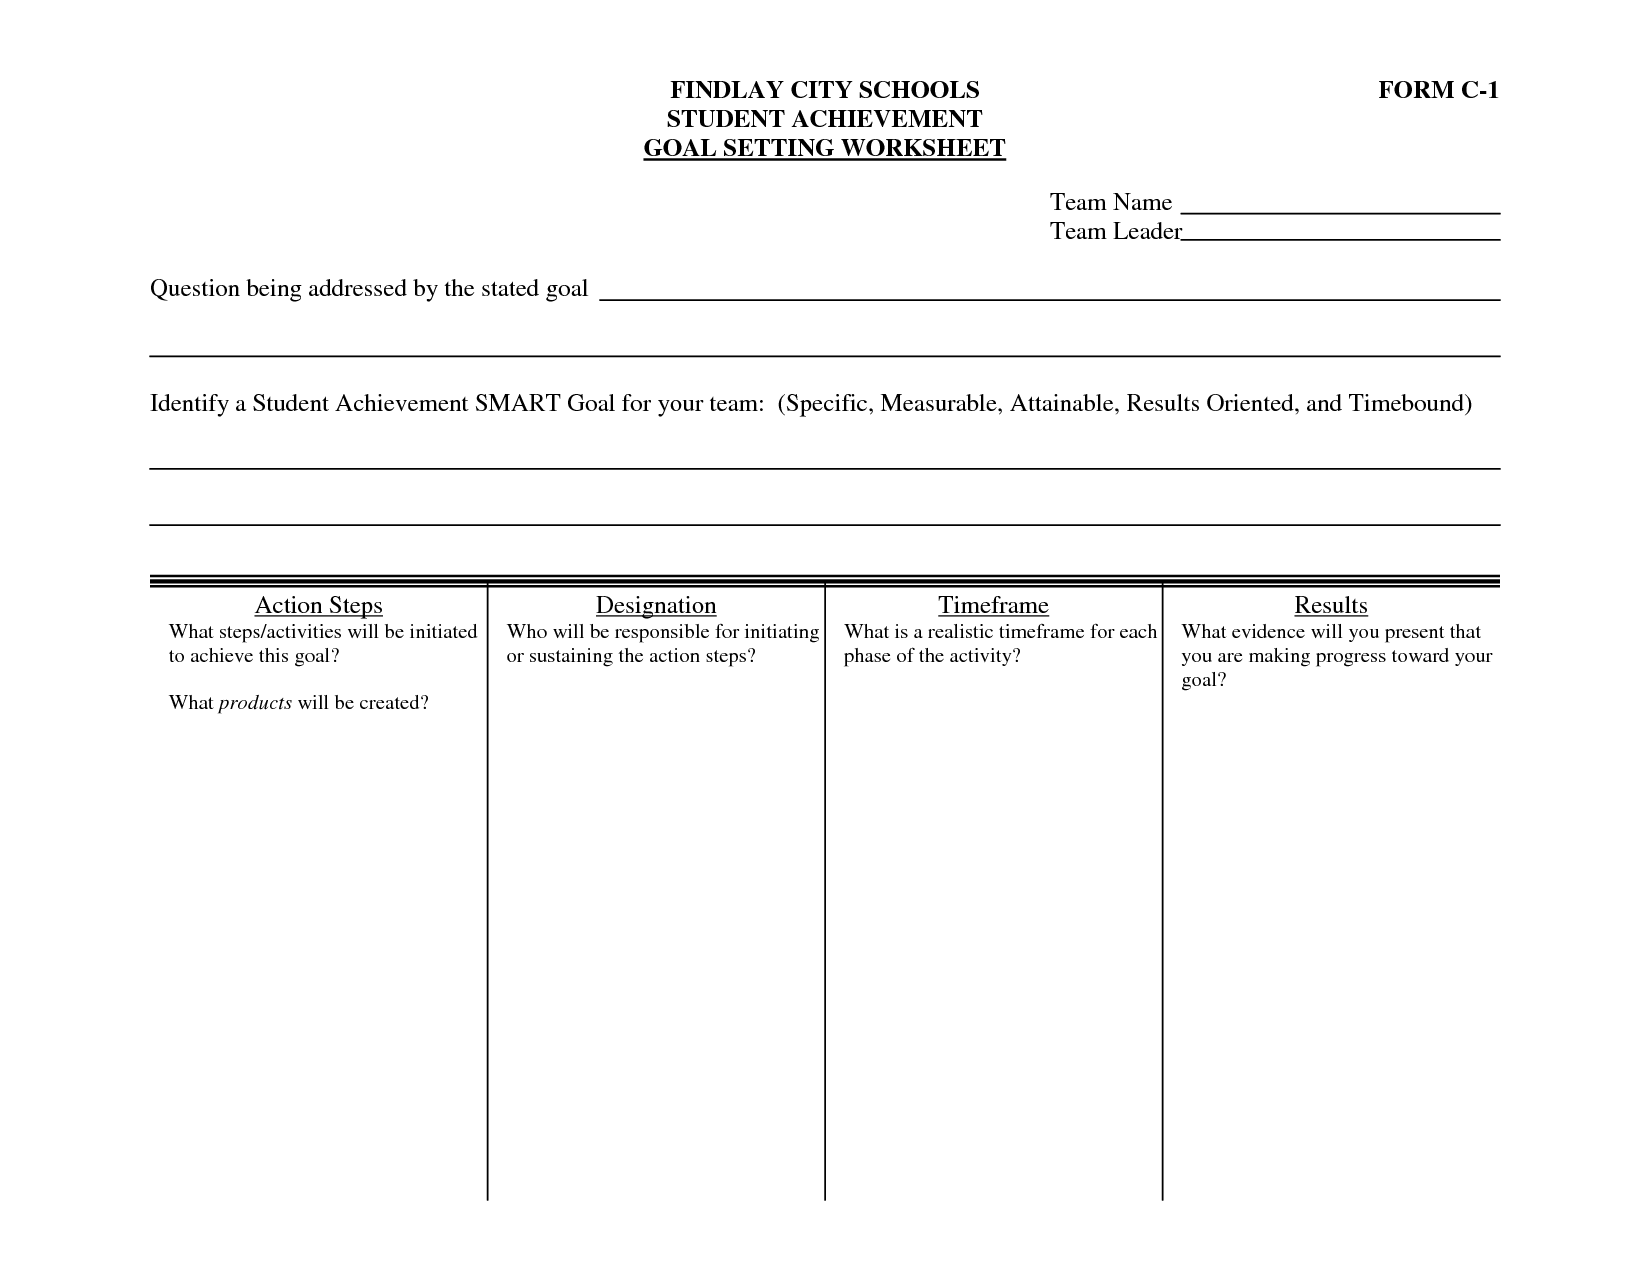 Middle School Student Goal Setting Worksheet